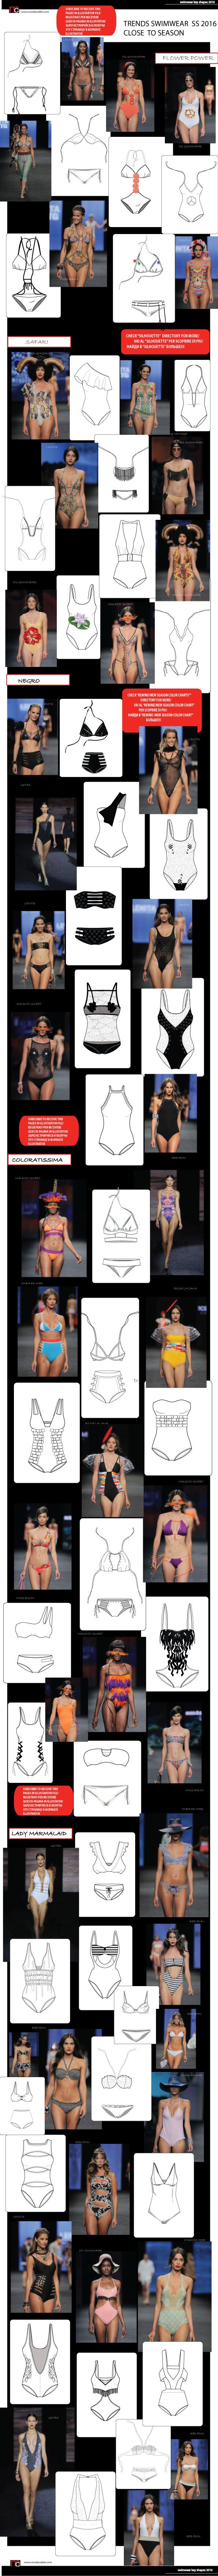 key shapes swimwear SS2016 close to season only art www.modacable.com, subscribe and get the access to the technical drawings free of charge!!!